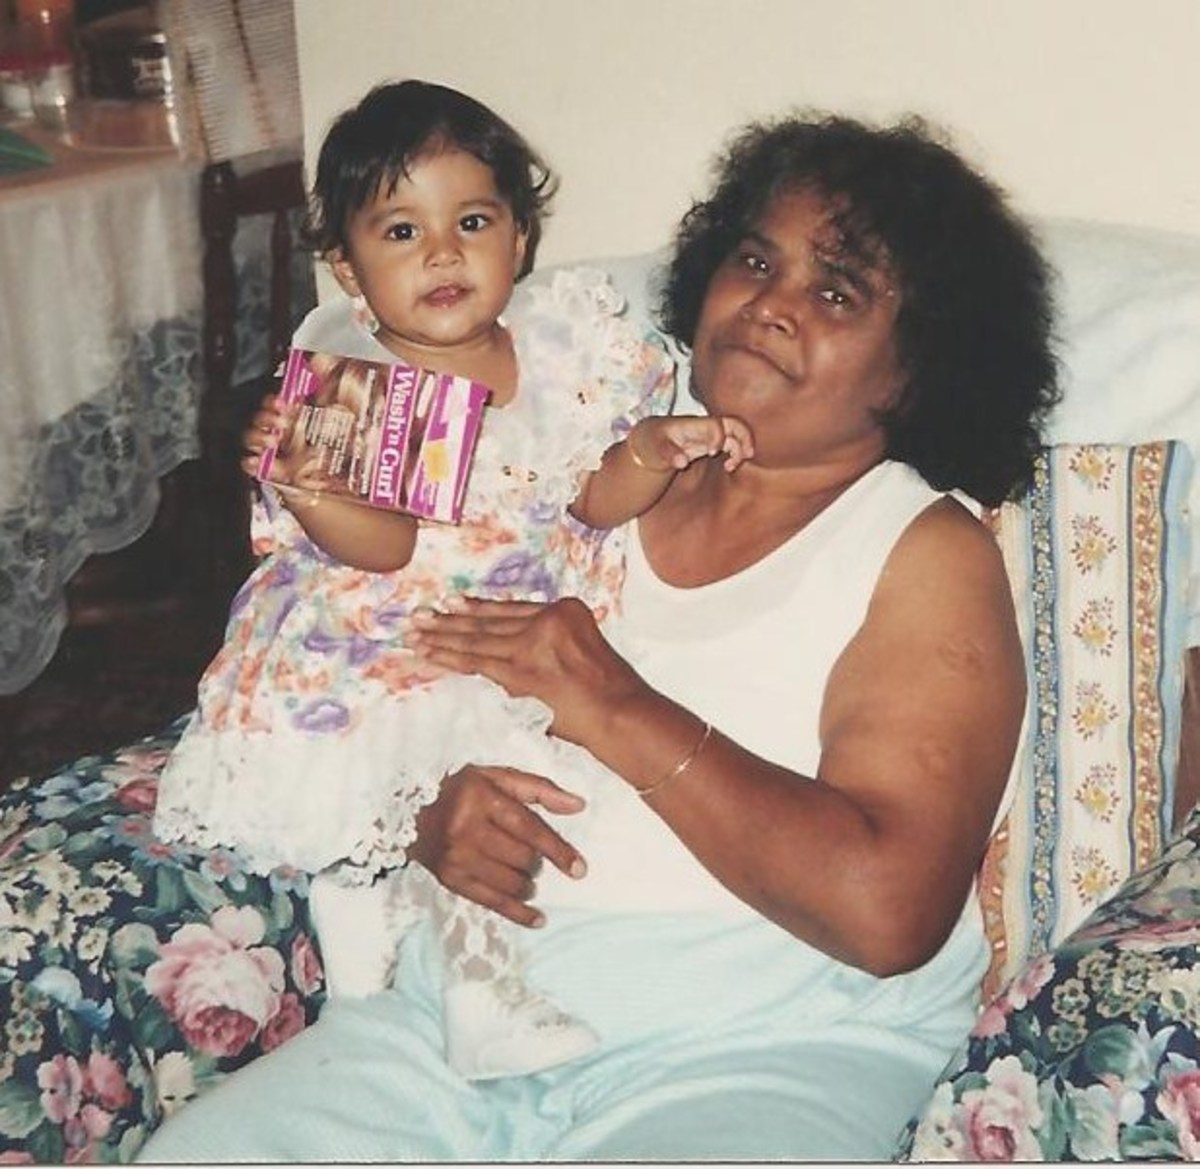 My daughter and her paternal grandmother. She used to dress my husband in girl clothes when he was a little boy because she wanted a little girl of her own.